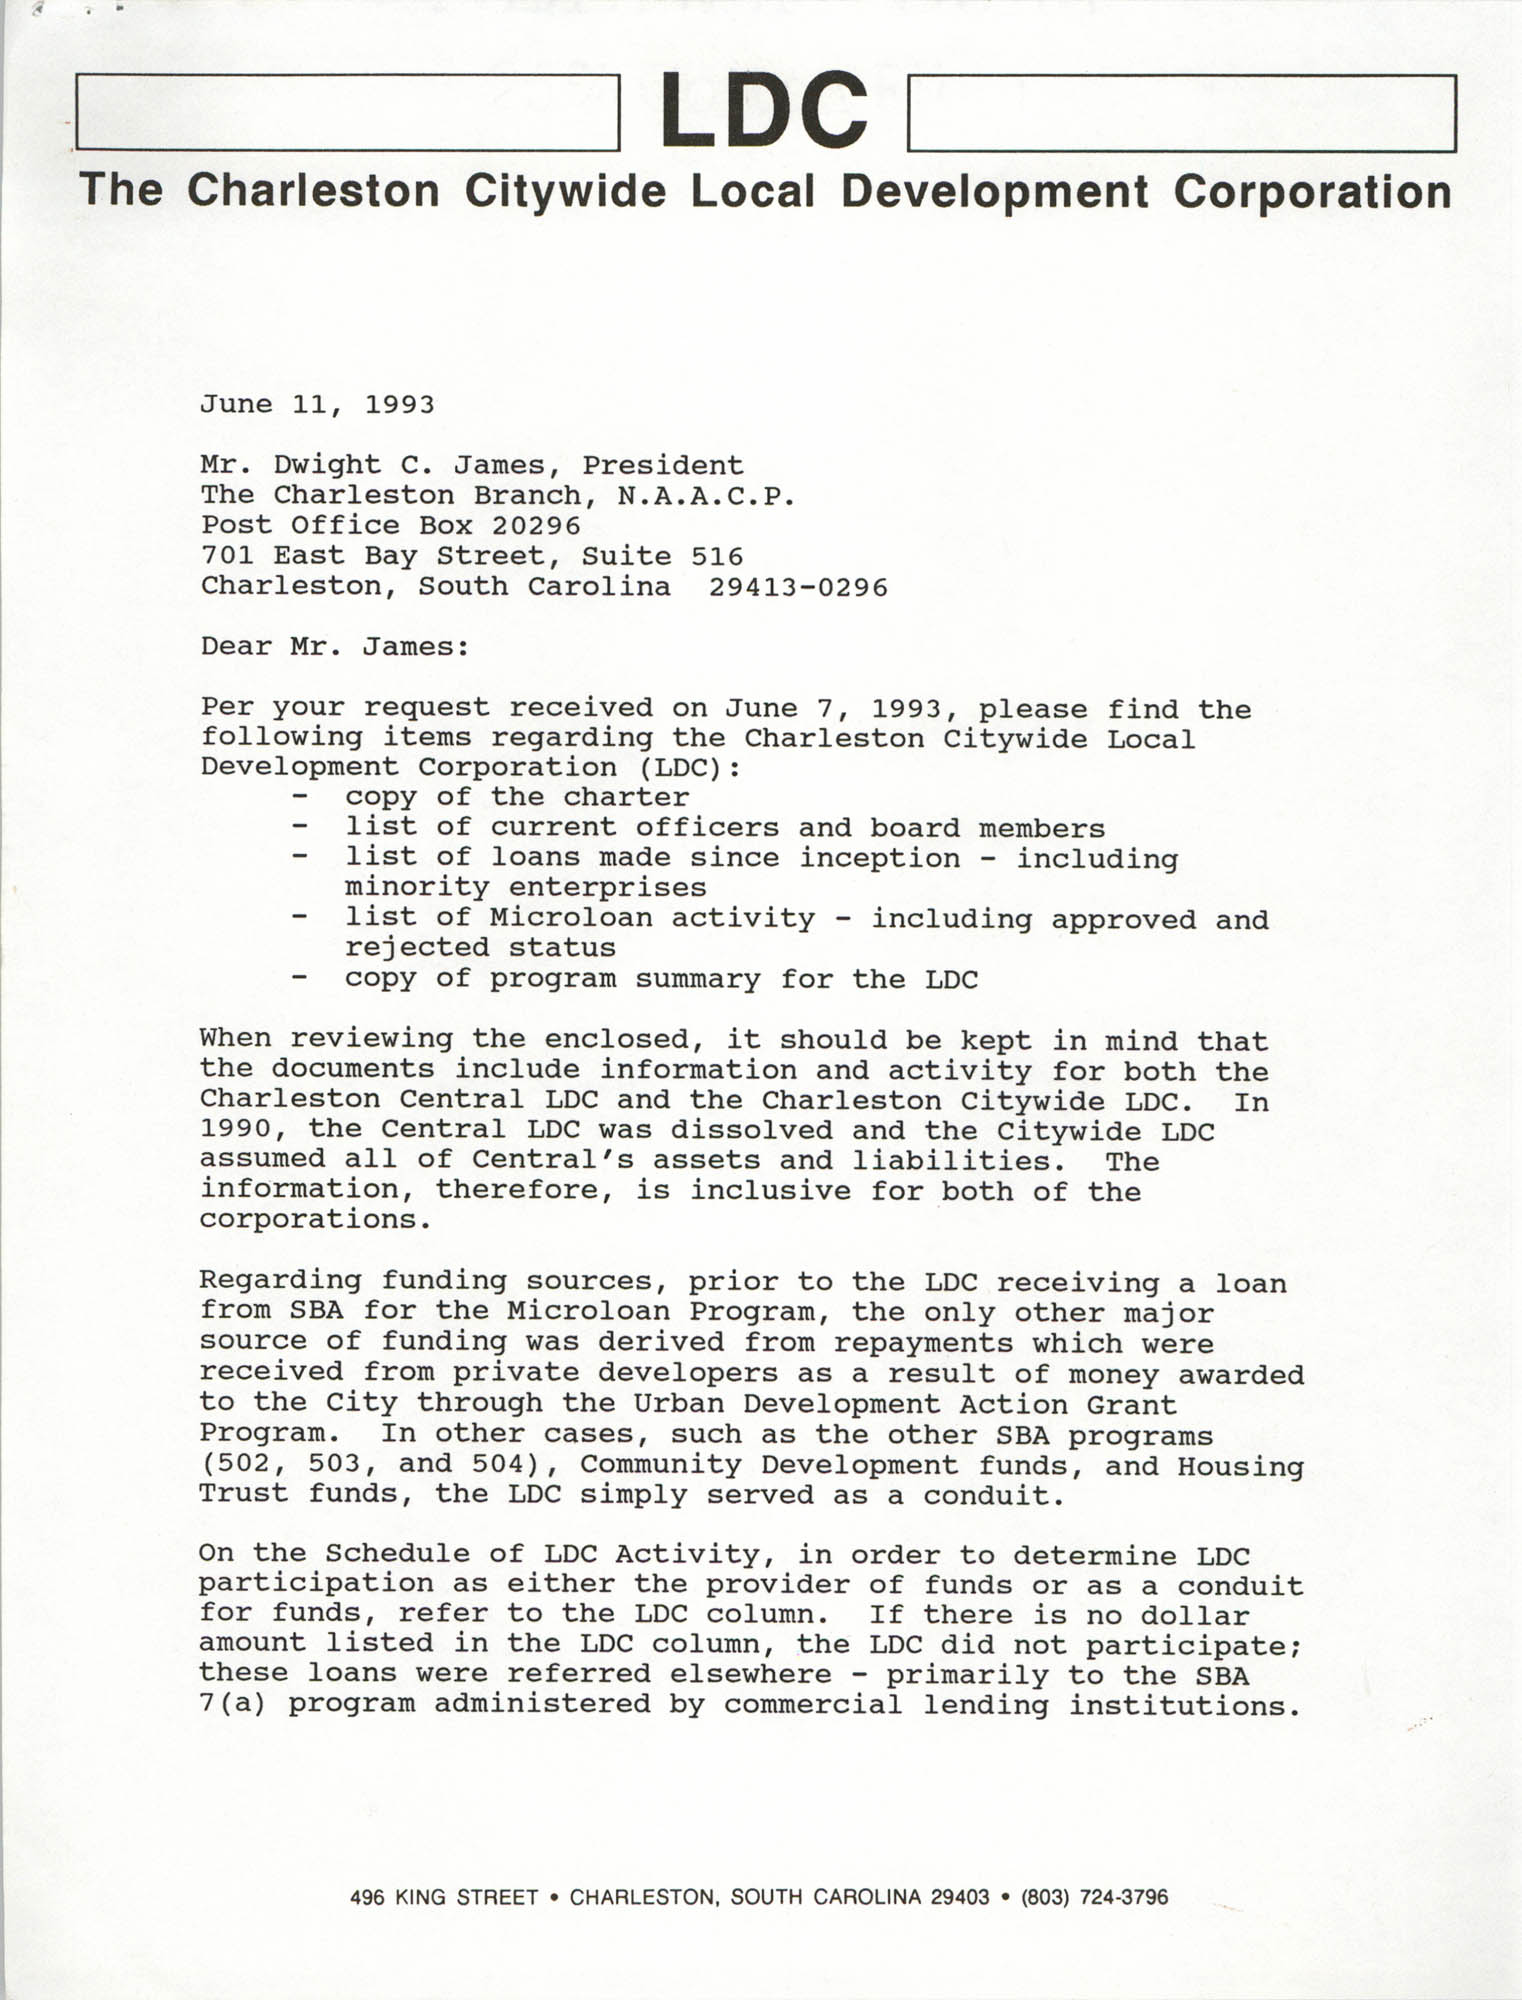 Letter from Sharon A. Brennan to Dwight C. James, June 11, 1993